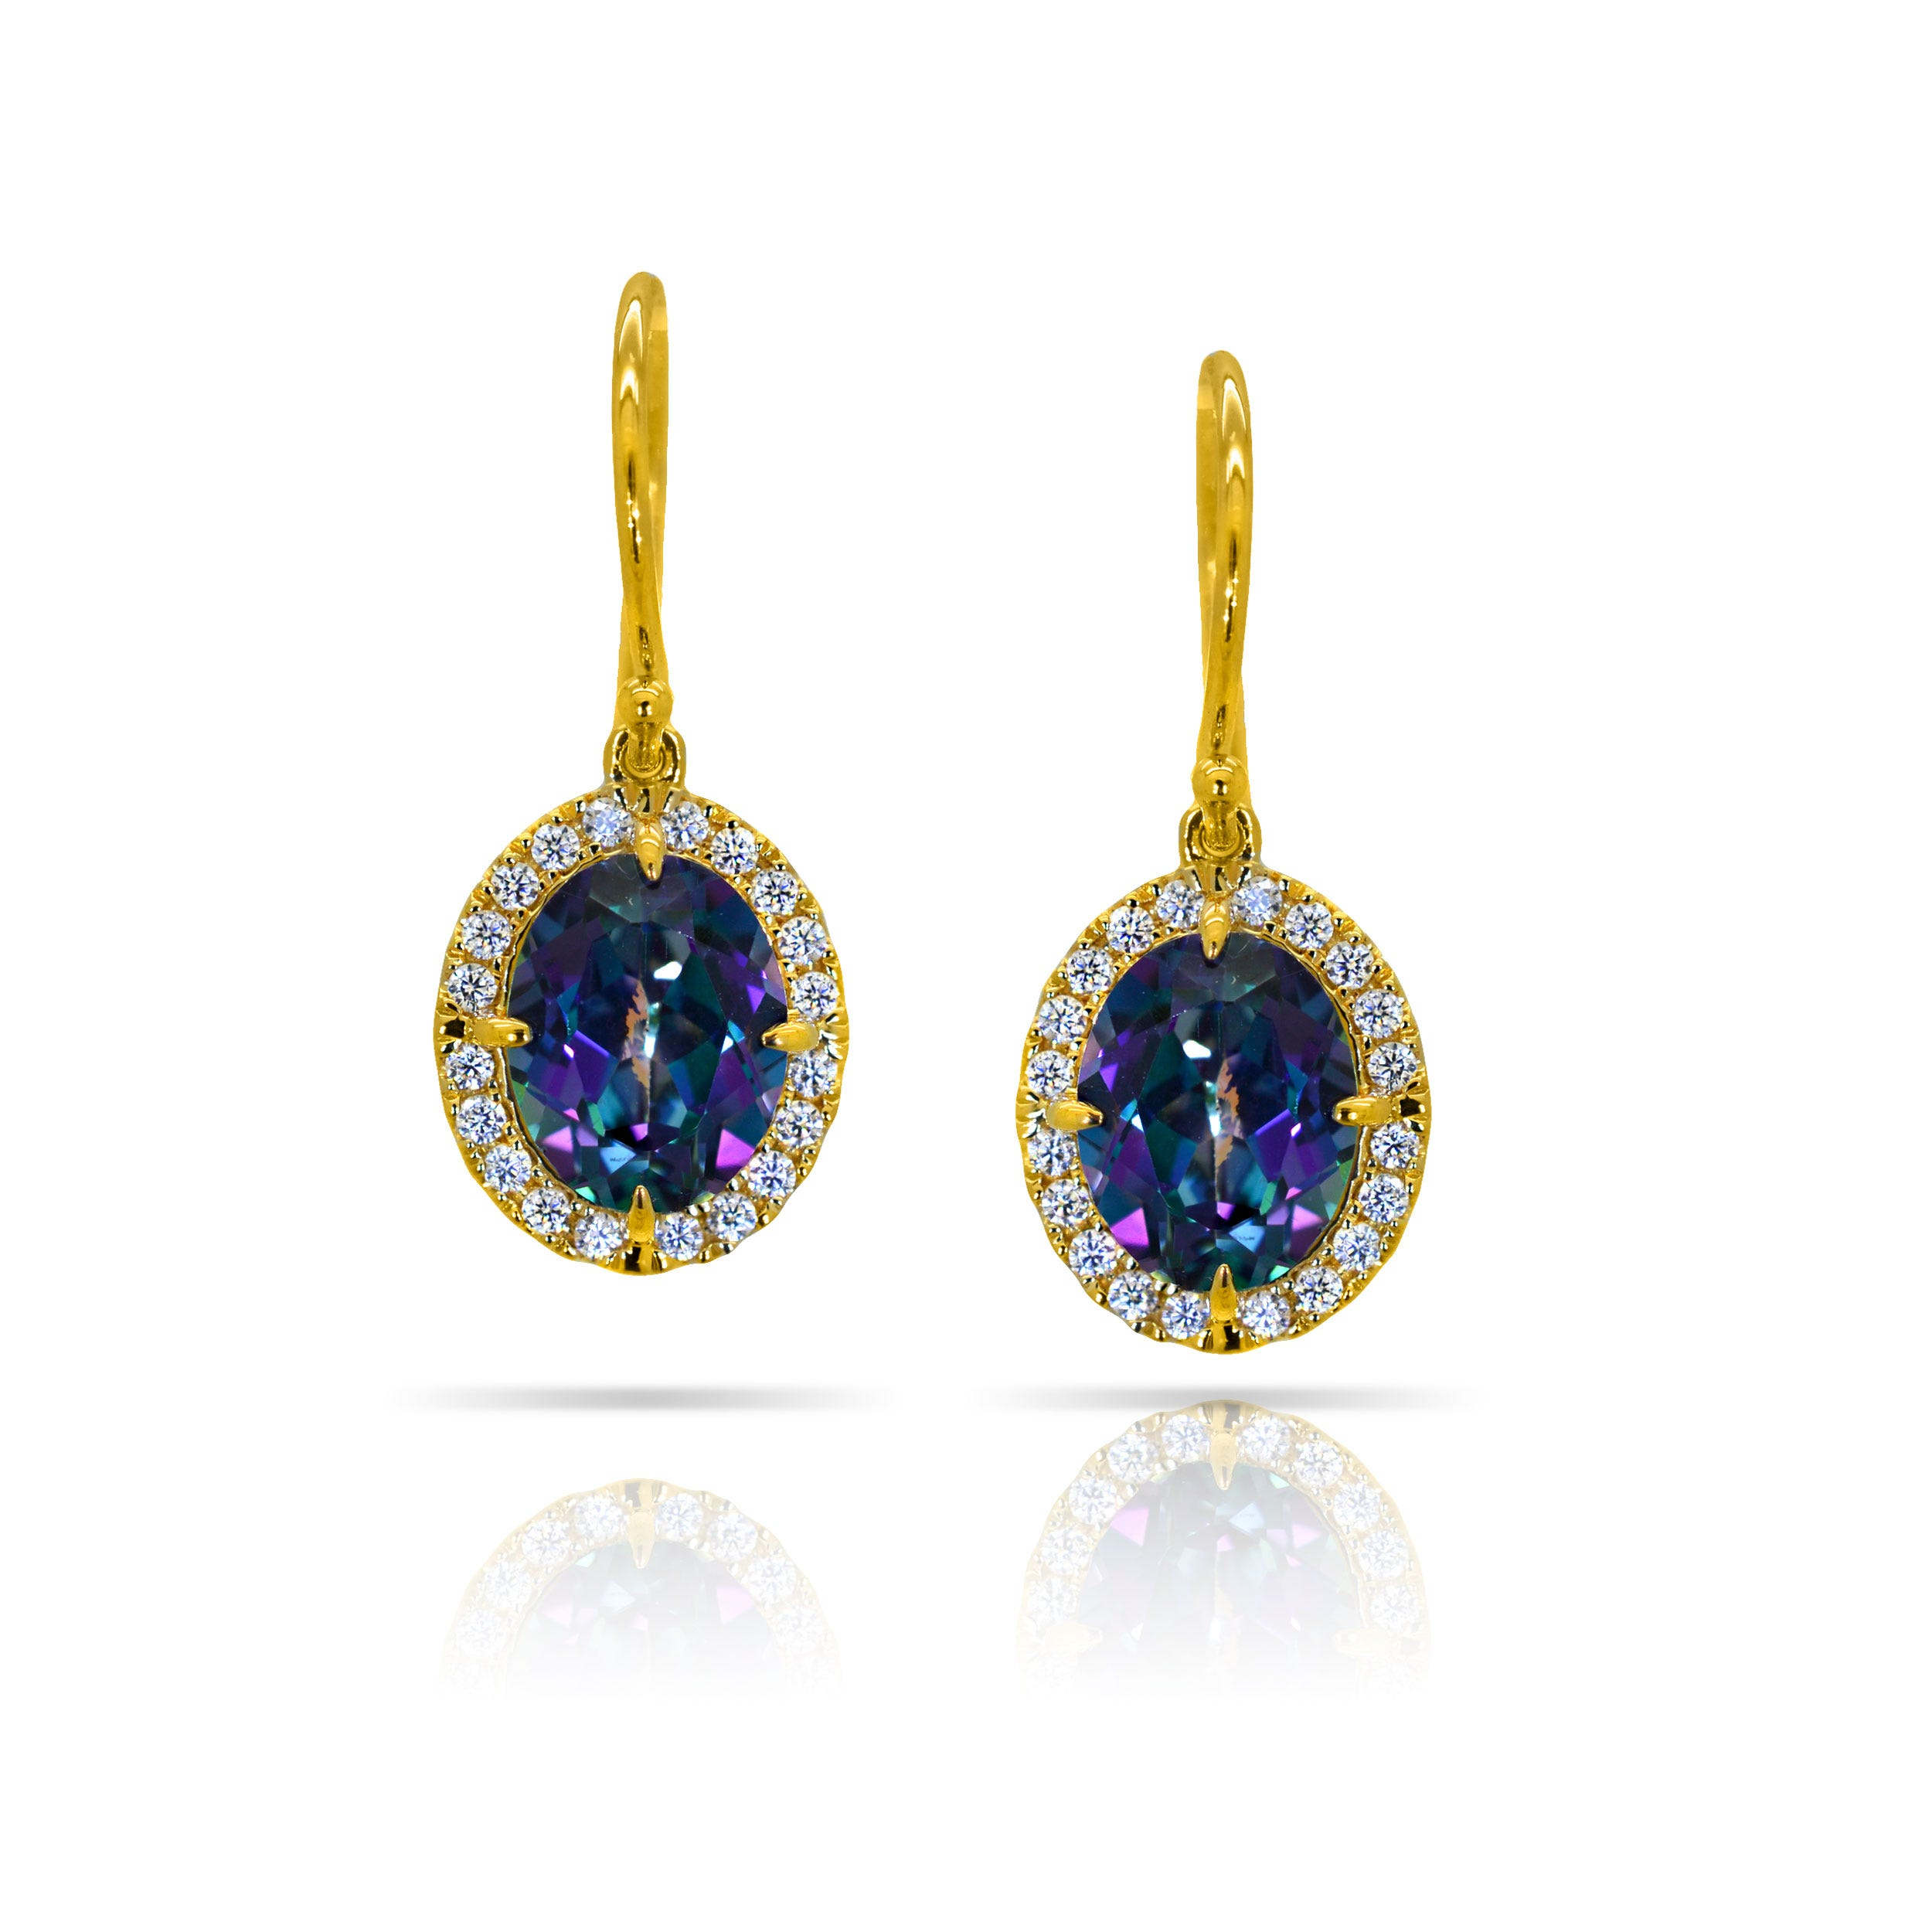 Blessed Oval Blue Topaz & Diamond Earrings in 10k Yellow Gold